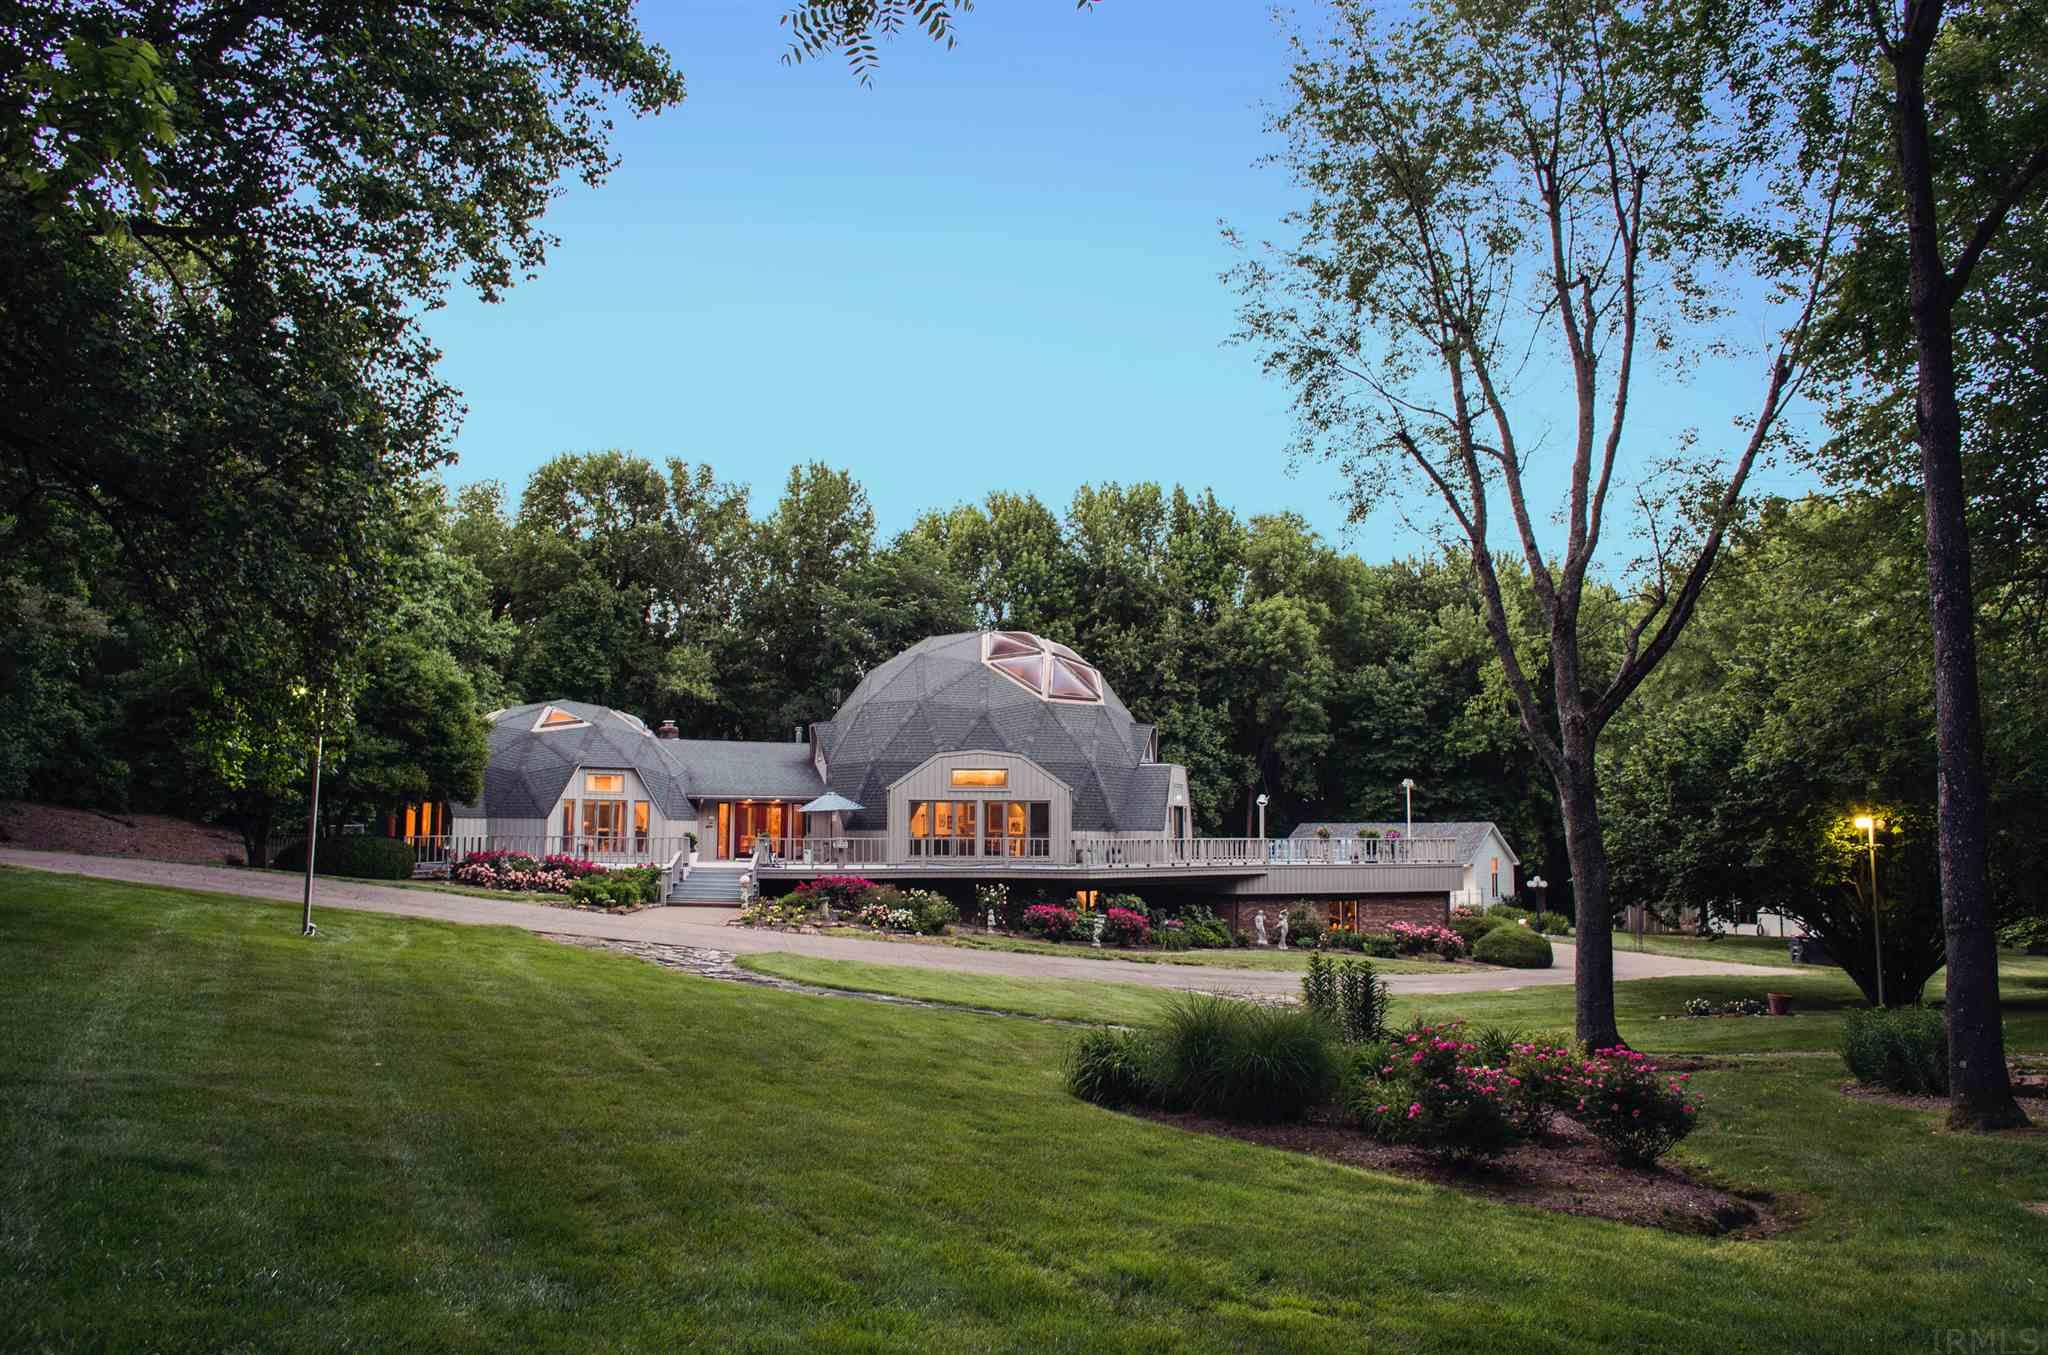 Evansville's preeminent geodesic dome house is on the market, and it's time to see it in a new light. Designed in 1981 by local husband and wife team Dr. Sandy Schen and restauranteur Jackie Schen, no other home offers the perfection of early 1980s/1990s high-end contemporary design, immense scale, and an oasis of landscaped acreage on Newburgh Road. With two domes, one soaring to nearly 28 feet on the interior, the roots of Buckminster Fuller are twice as prevalent here. Featuring over 12,000 square feet of living space, the home's major goal is prevalent throughout: to entertain family and friends, both near and far. The home's main level includes three formal dining areas, flooded with natural light, bringing the outside in. Two master suites, an executive library, and a living area in the smaller dome large enough for dining, sitting, and a concert grand piano. Domed ceilings show the signature transition from hexagons above to pentagons below. Custom art made for the home graces the soaring stairwell, while the open kitchen with commercial grade appliances anchors the heart of the home. The original master suite sits just off the kitchen and cork-floored dining area and works perfectly for private guest quarters. Featuring a vibrant accent wall of hand-painted French wall-paper, the home's original thrust of contemporary design is clear here - from clean contrasting tile floor, white track lighting, and en suite with Corian shower and soaker tub. The curved kitchen opens into the enormous 1990s addition, which includes a second open access to the finished basement, a vast entertaining and living area, and a Las Vegas worthy master suite boasting his and hers walk-in closets, copious amounts of Corian in the tub surround and walk in shower, and a walk-out to the inn-worthy rear covered deck. The home's three other bedrooms lie in the larger of the two domes, each with their own loft spaces, two connected by a Jack-and-Jill bathroom. Below grade, in the expansive walkout basement, sits a billiards area, executive office, 4th dining area, entertainment space with wet bar and dry bar, guest suite, music/theater room, and wine room. Outside, the original pool house welcomes you into a focal point of entertaining and hospitality with kitchen, guest suite, and open living area - all walking right out to the diving board, the home's sunset view to the west flanking the entire resort of architectural experience. Two domes. Two words. Geodesic deliciousness.